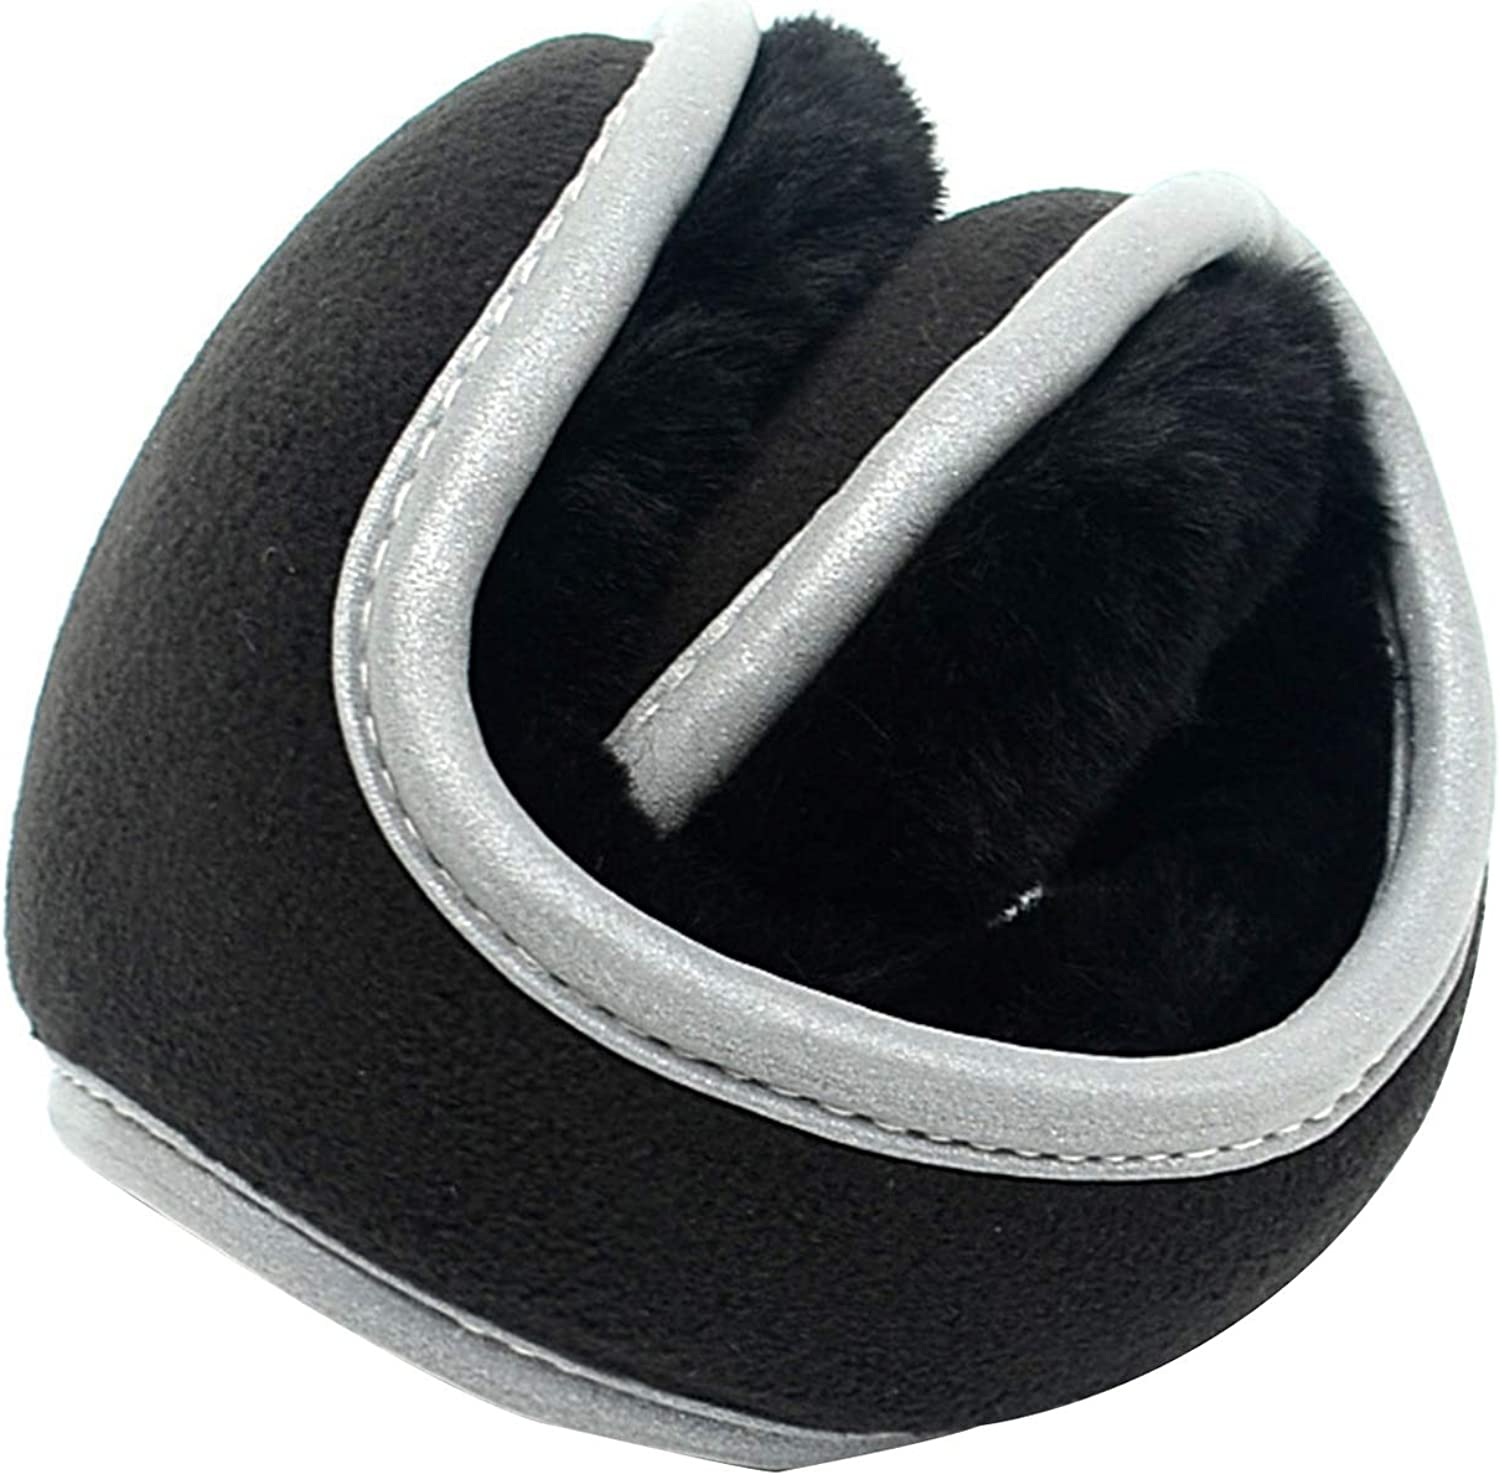 Max 48% OFF Winter Ear Muffs Foldable Solid Warme Earmuffs Fleece Price reduction Color